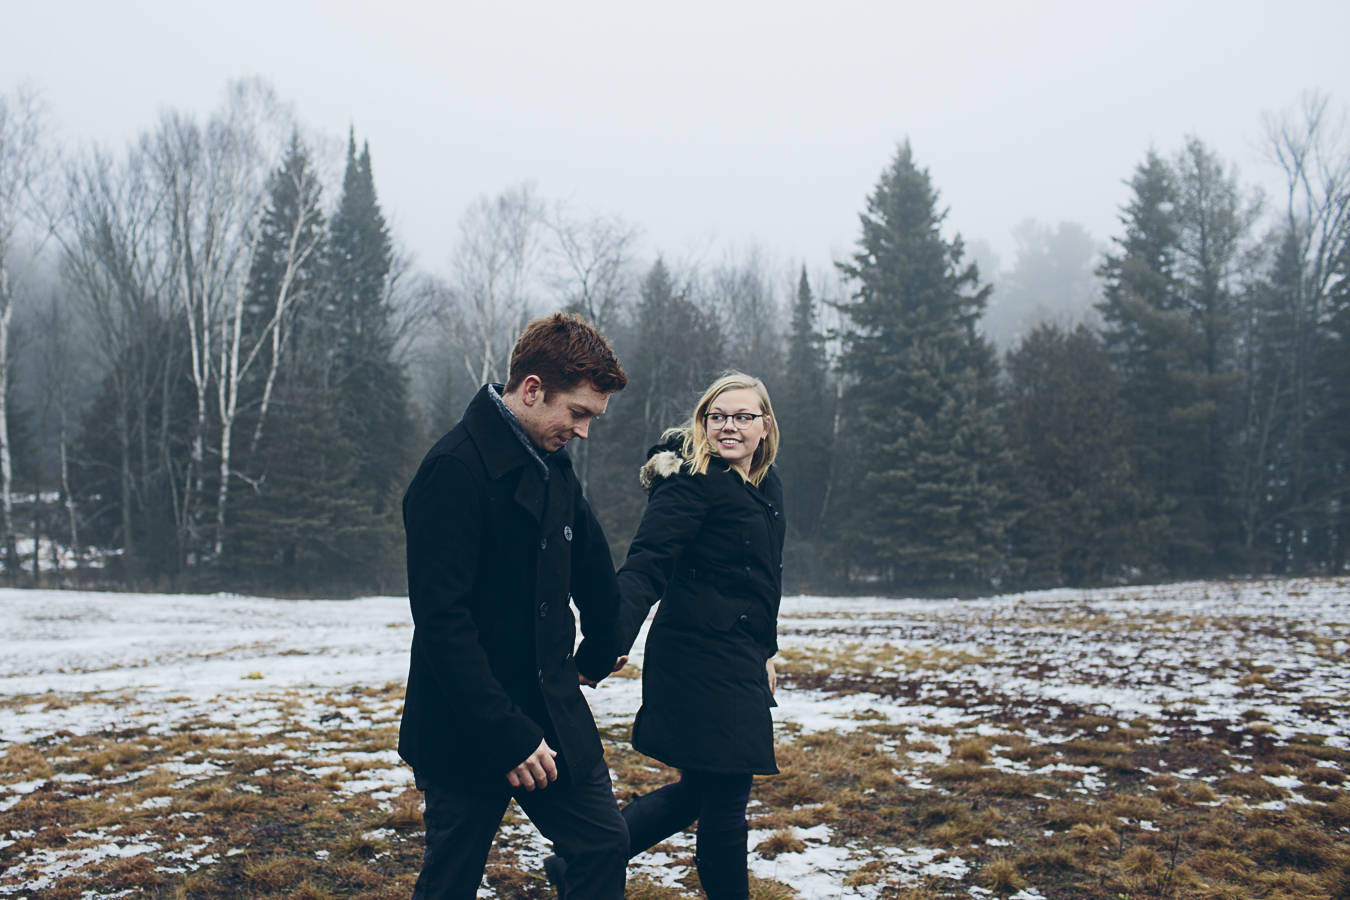 A cute couple in a snowy field